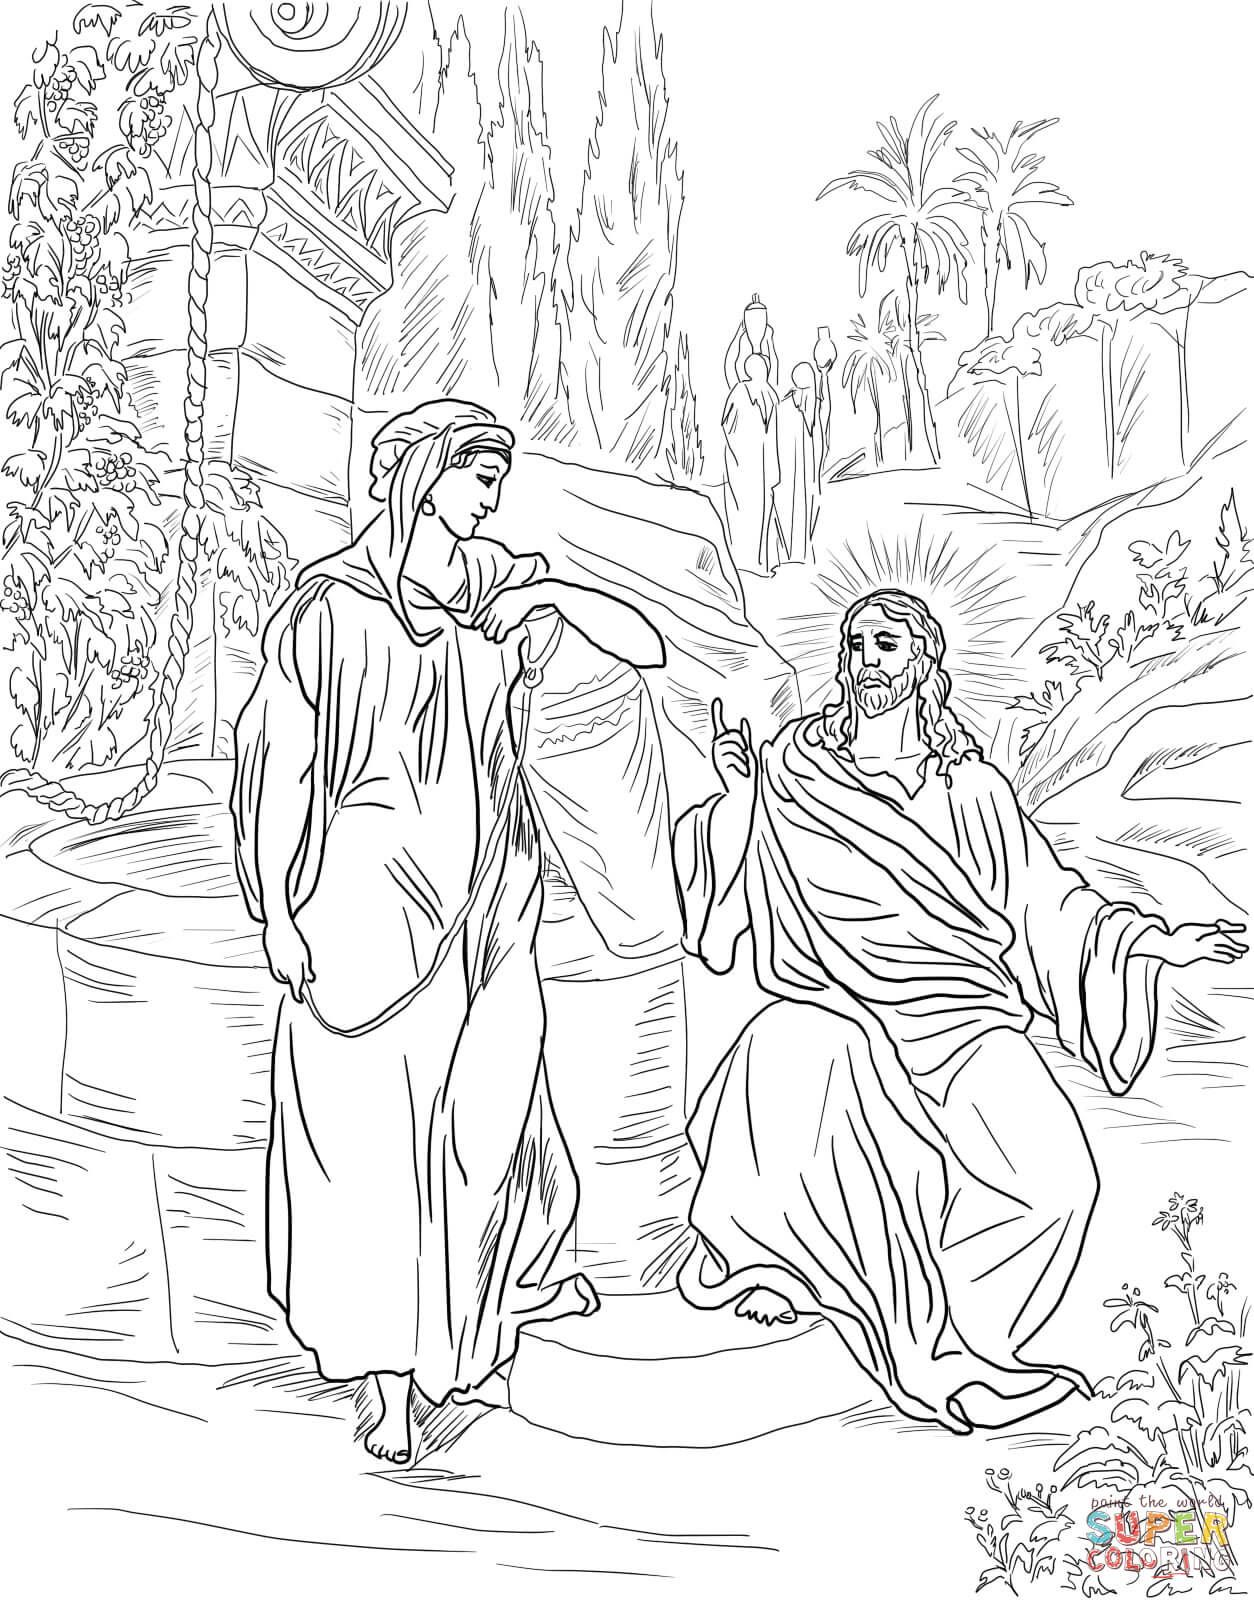 Refundable Woman At The Well Coloring Page Free Jesus And